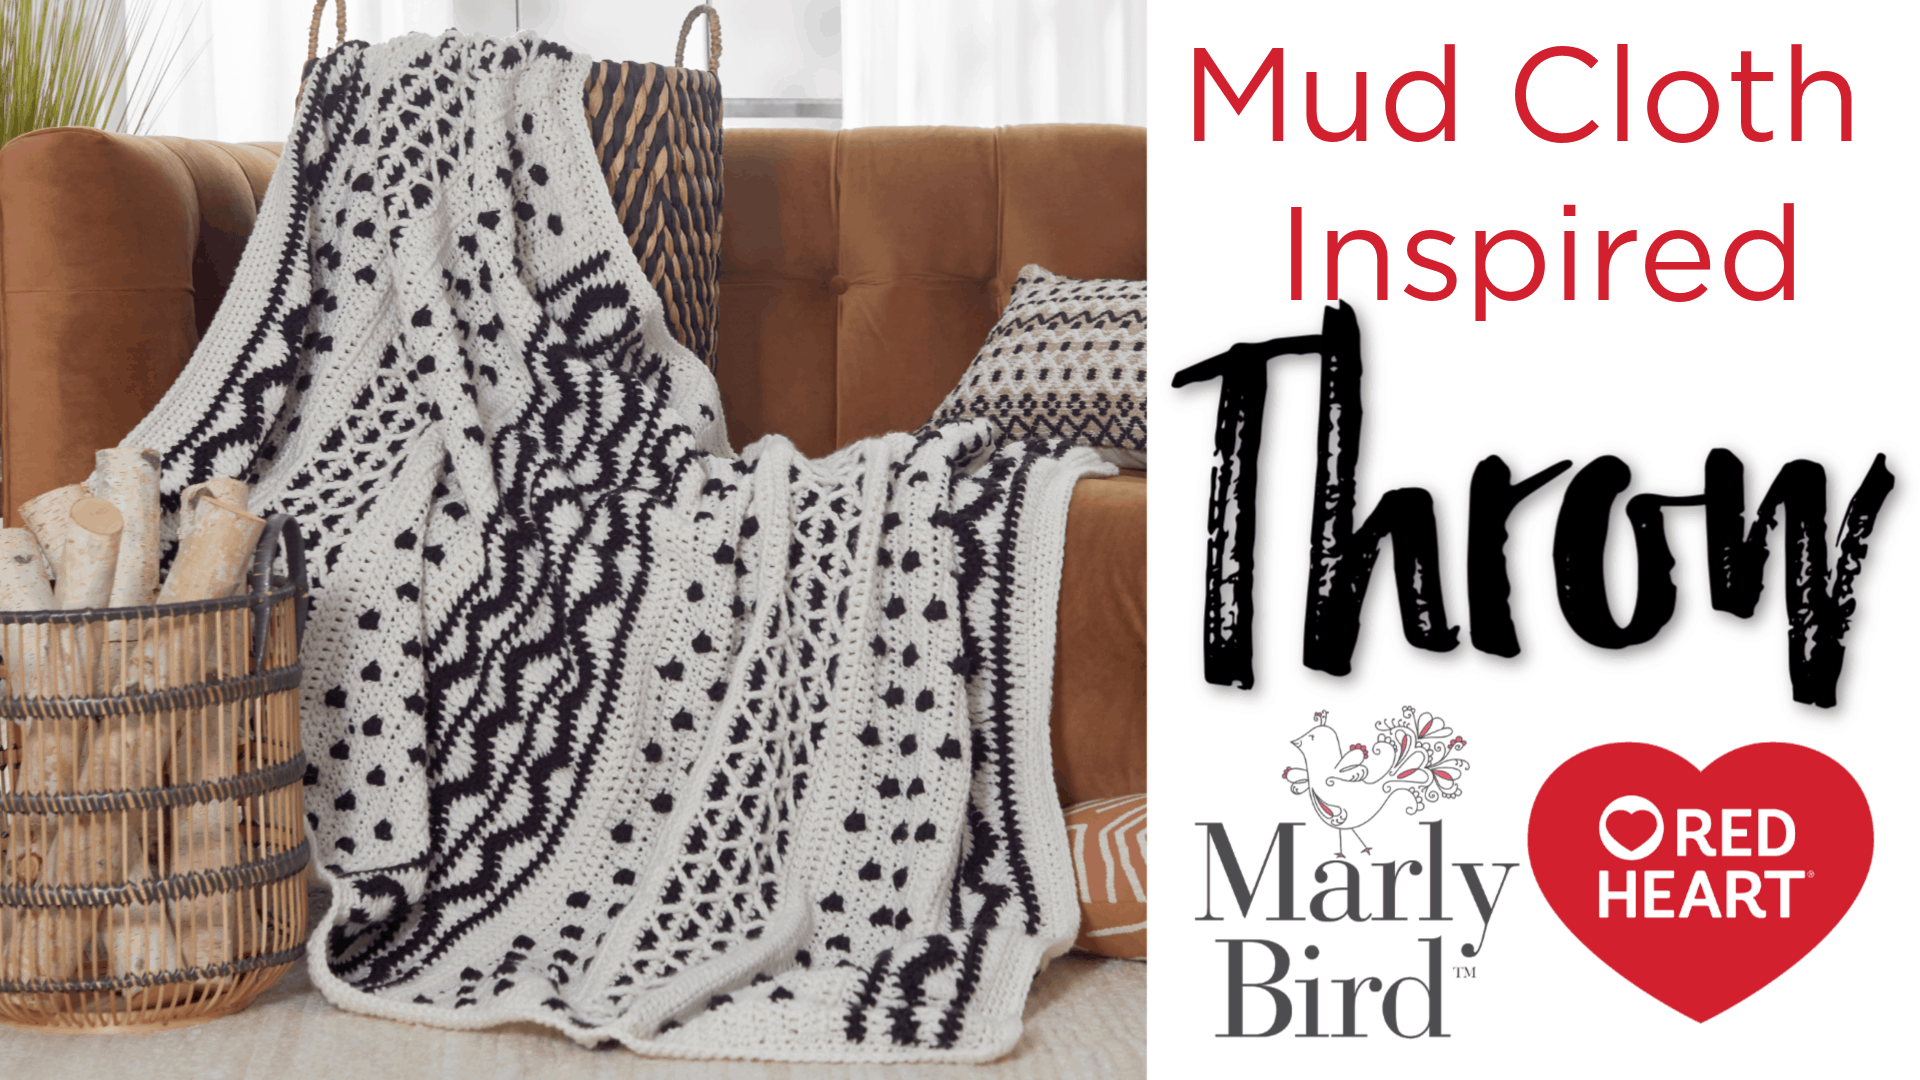 How to Crochet the Mud Cloth Inspired Blanket